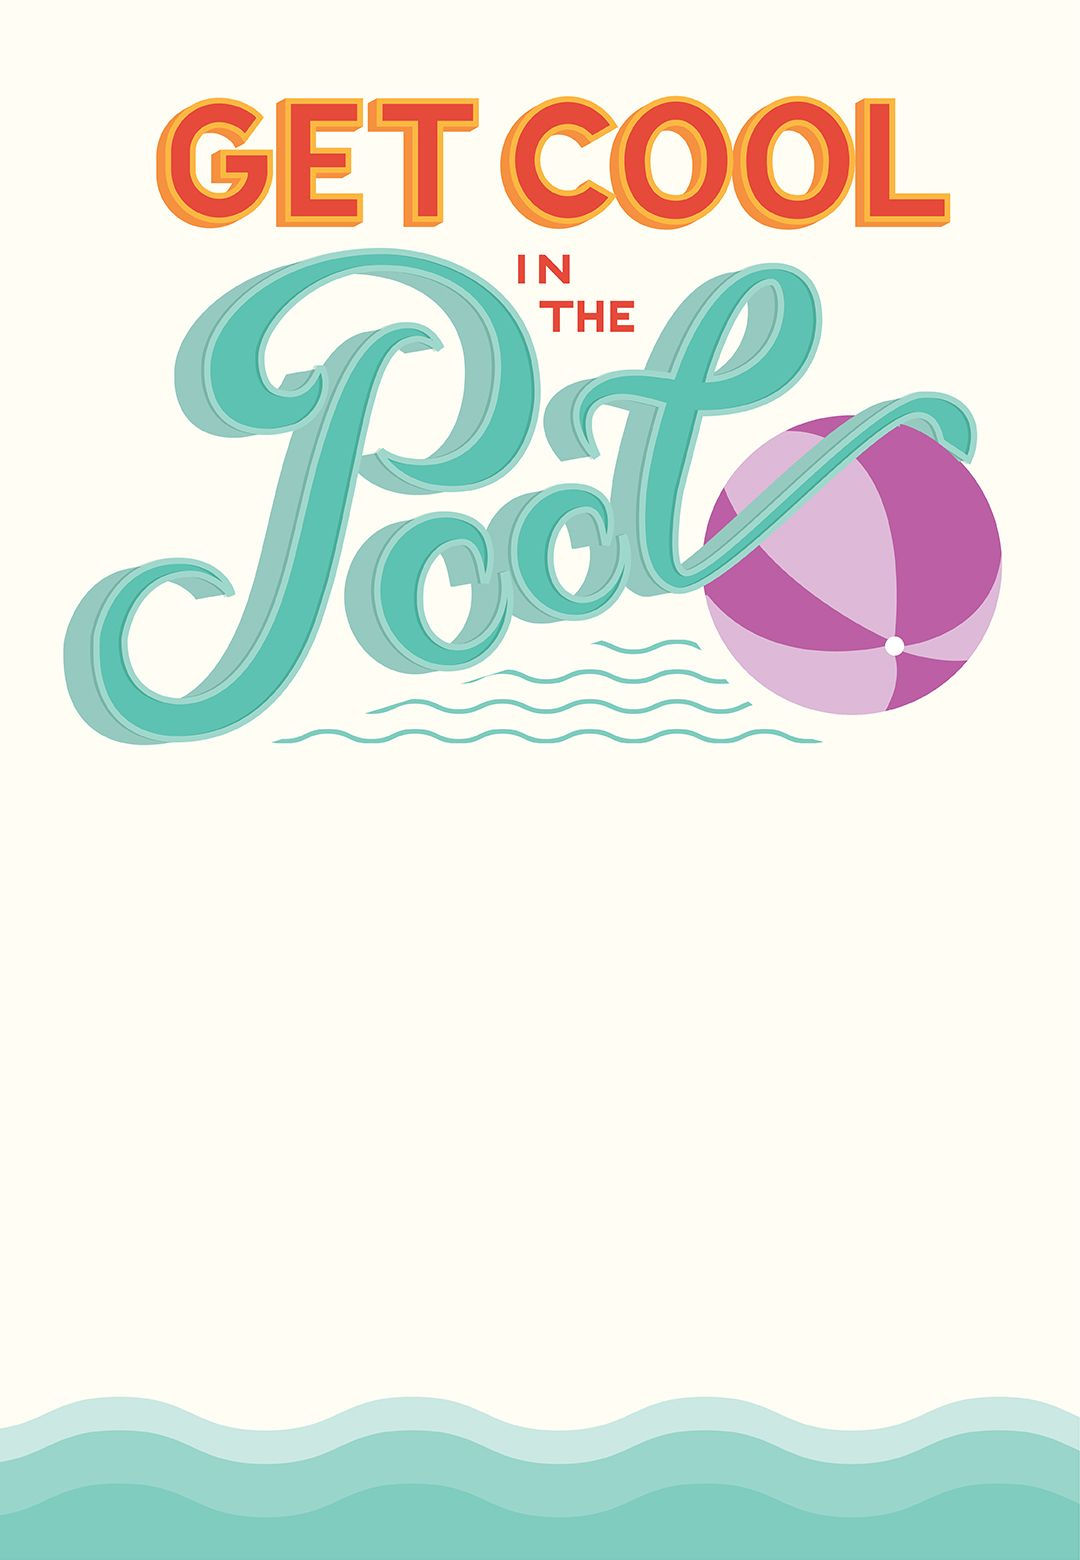 Pool Party - Free Printable Party Invitation Template   Greetings - Free Printable Water Park Birthday Invitations